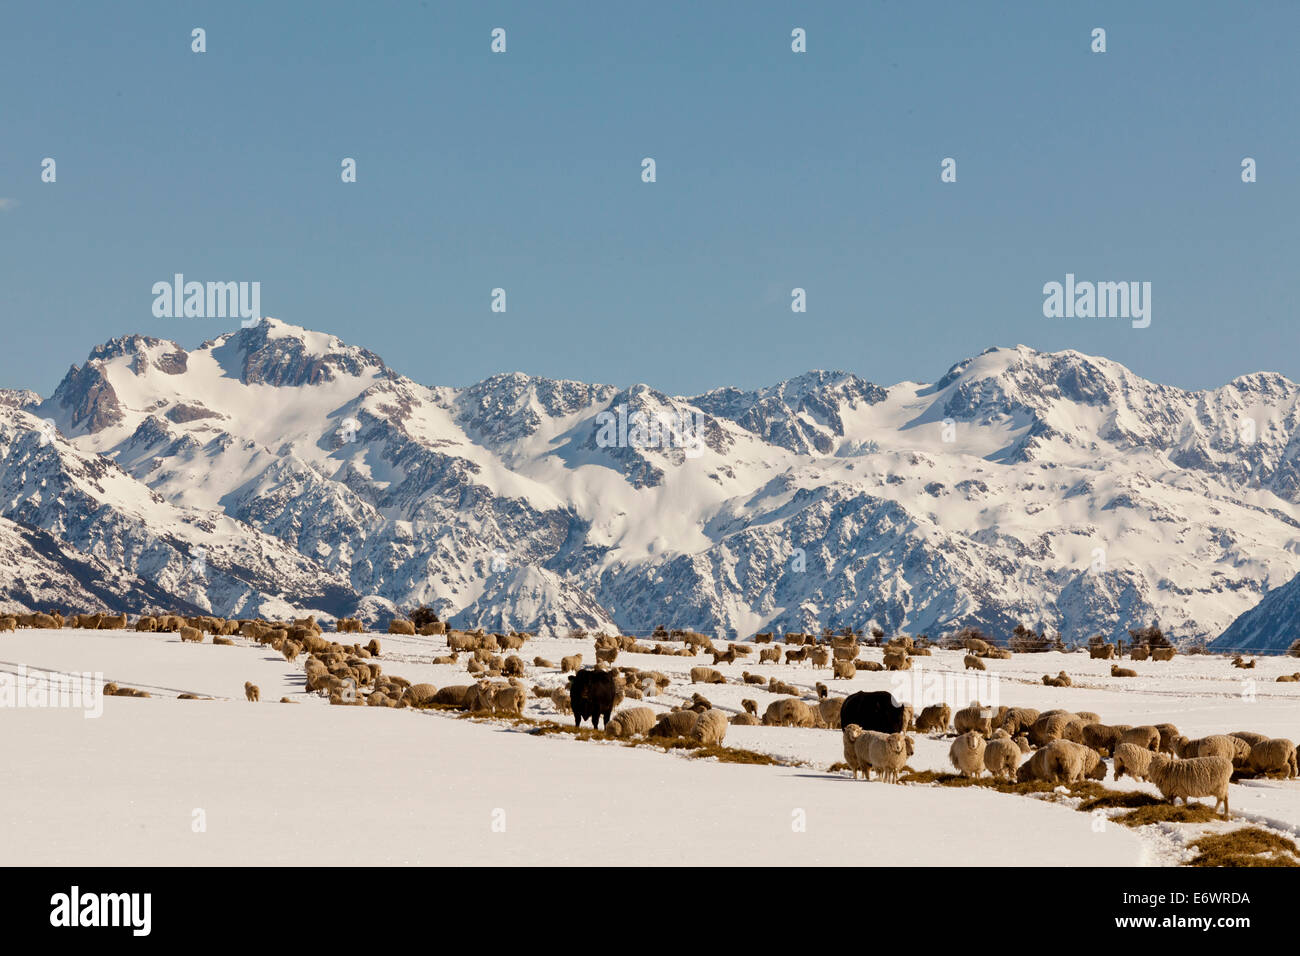 Livestock with winter feed at Arthurs Pass, herd of sheep and cattle in snow, Southern Alps, South Island, New Zealand - Stock Image